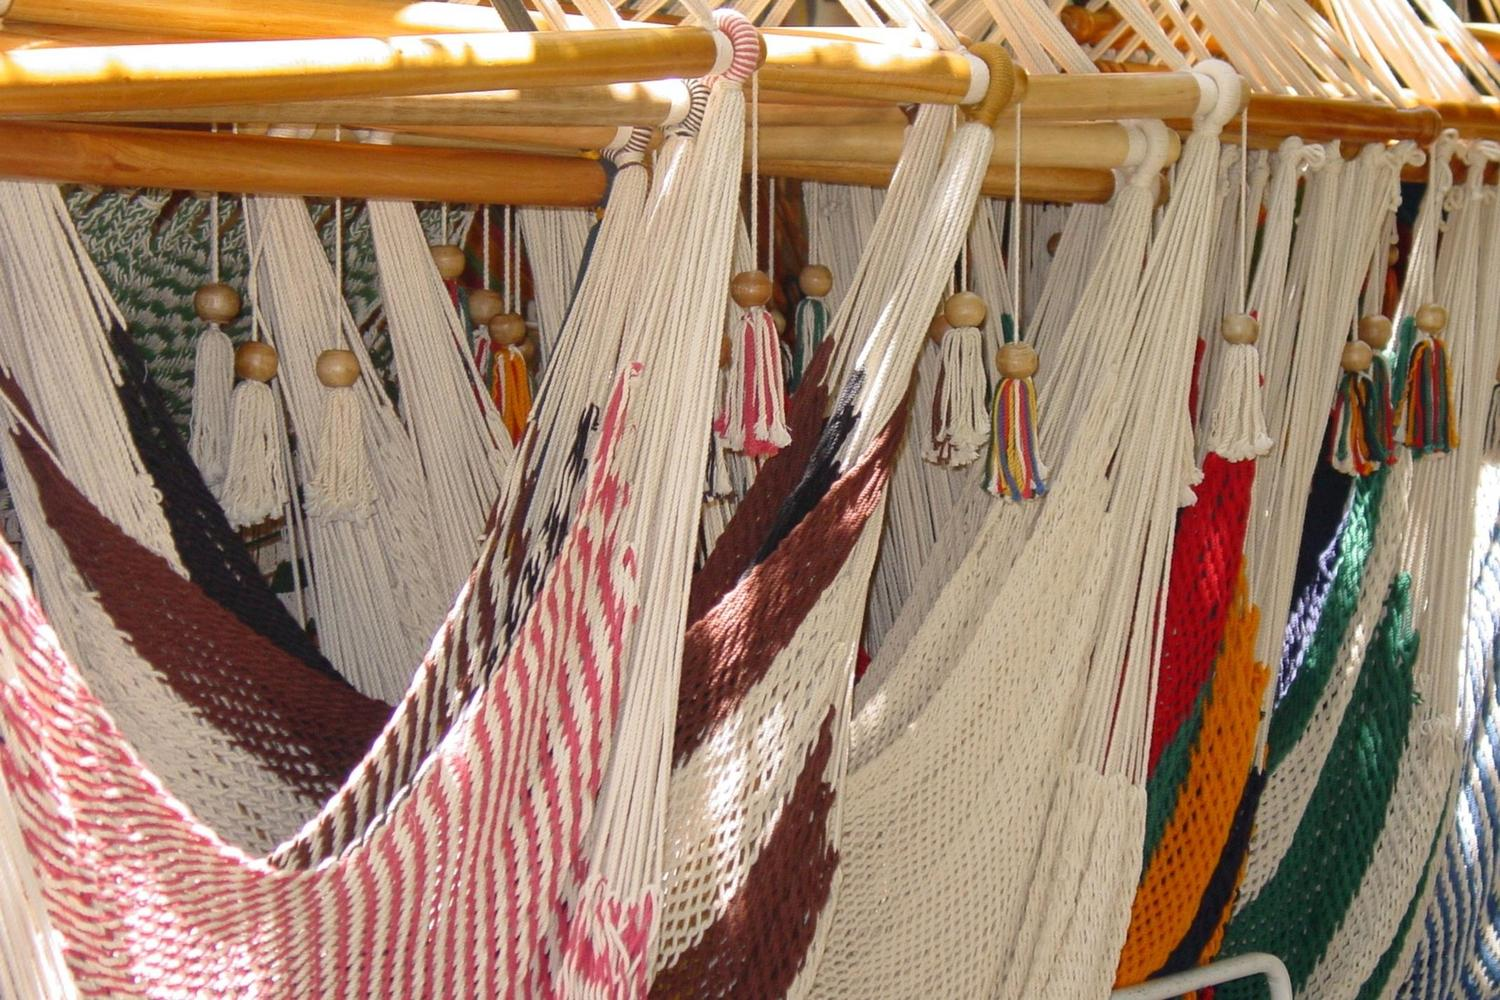 Hammocks for sale in the market